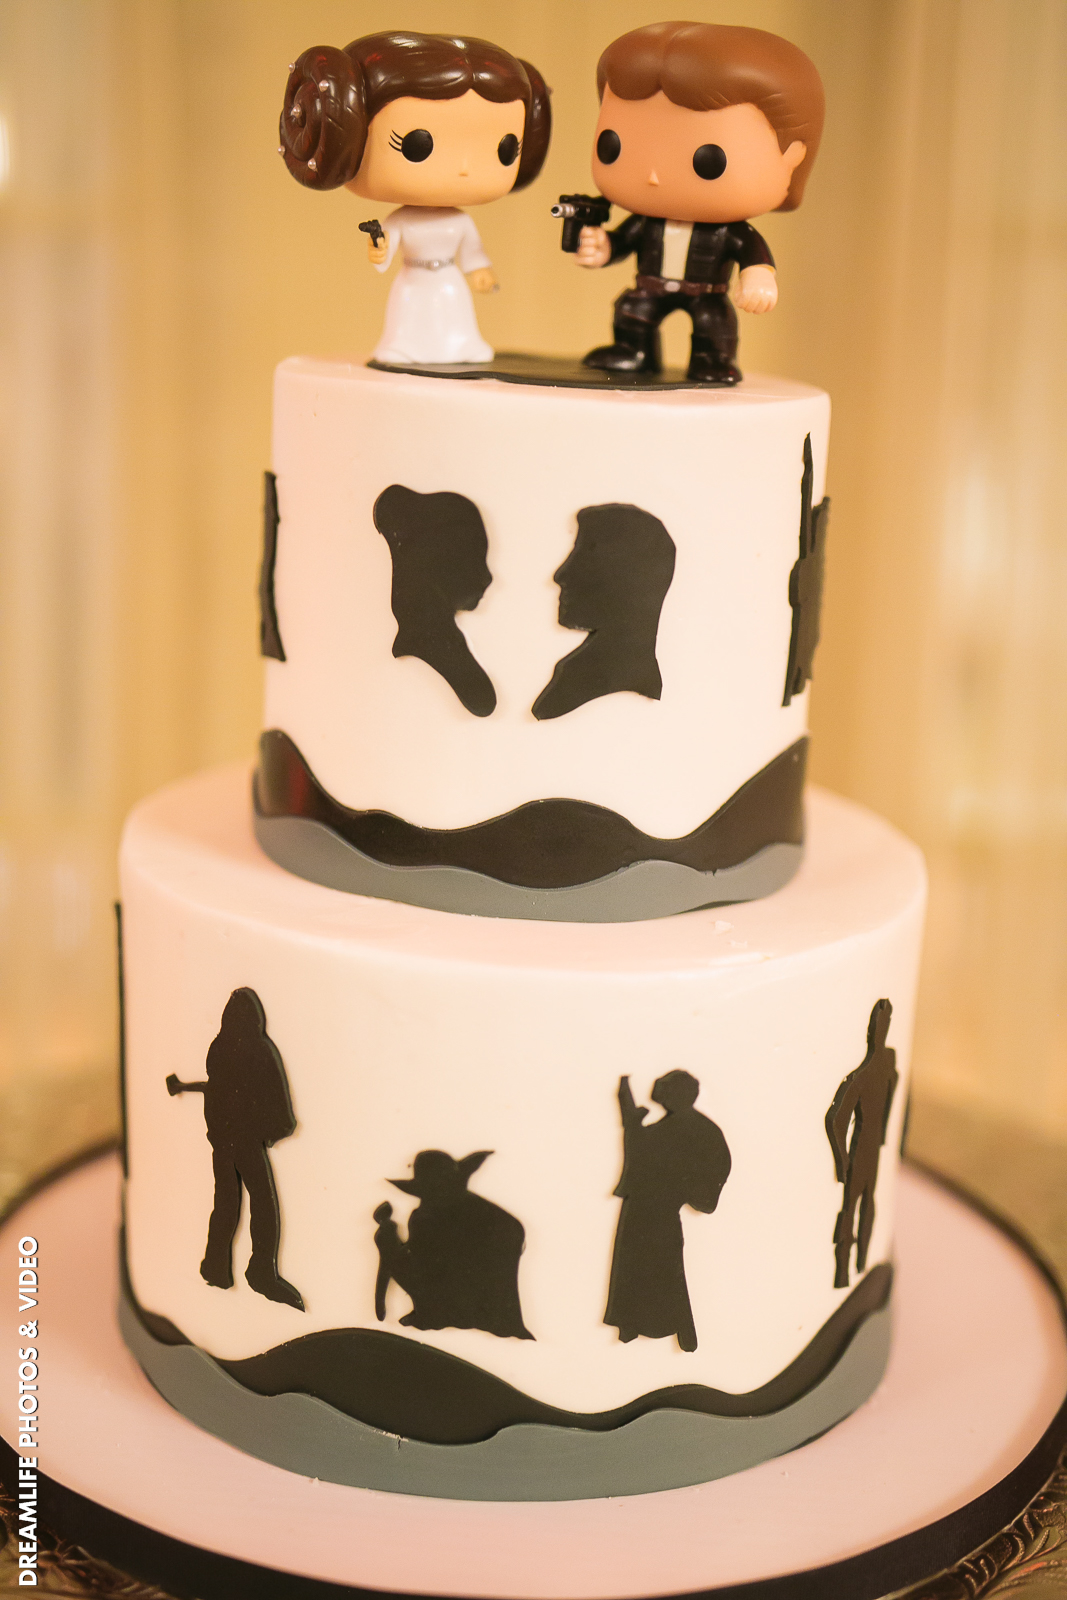 Star Wars Wedding Cake.Let Your Personality Shine With These Creative Wedding Cake Toppers